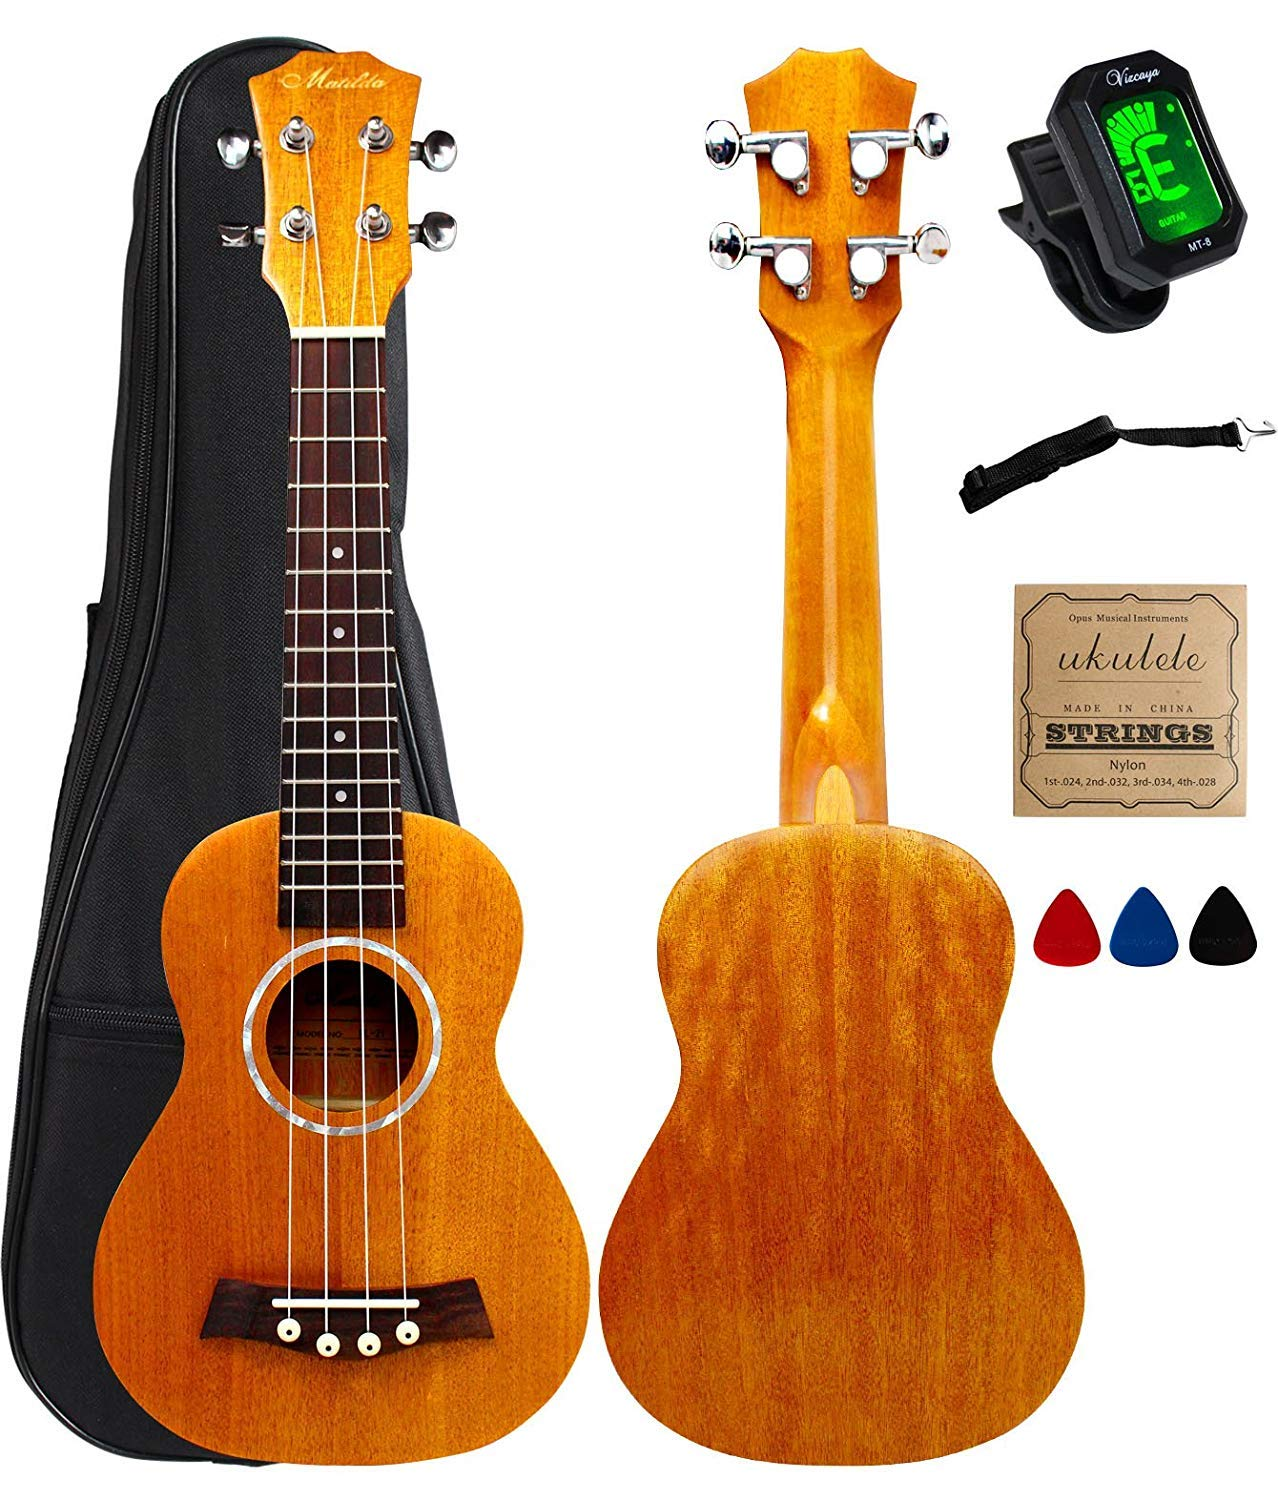 Vizcaya Soprano Ukulele Mahogany 21 inch stain finish with Ukulele Accessories, 5mm Sponge Padding Gig Bag, Strap, Nylon String, Electric Tuner, Picks